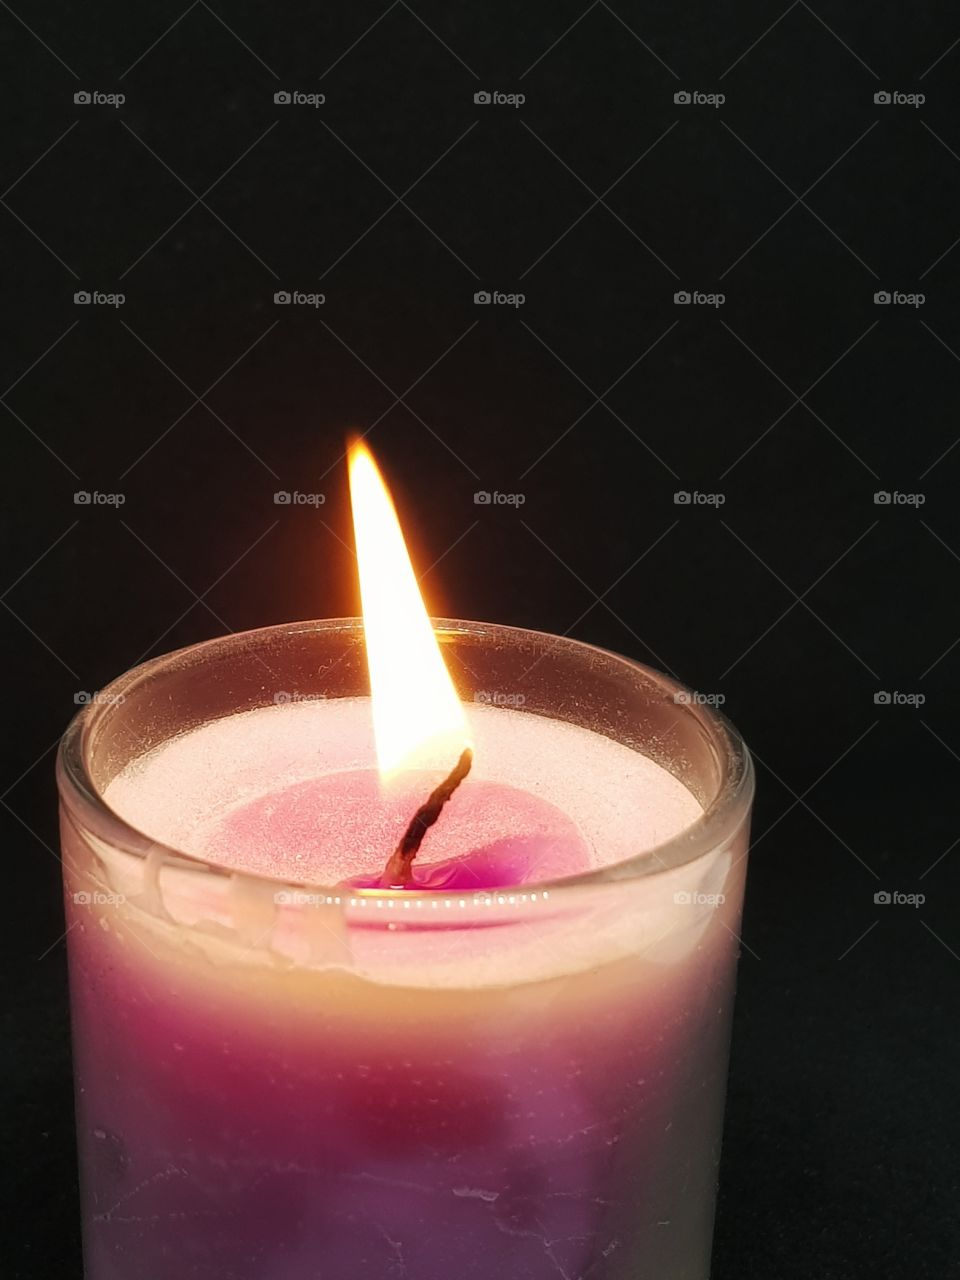 Candlelight in the dark. The outer side of candle is glass and texture colour is pink, white pink.